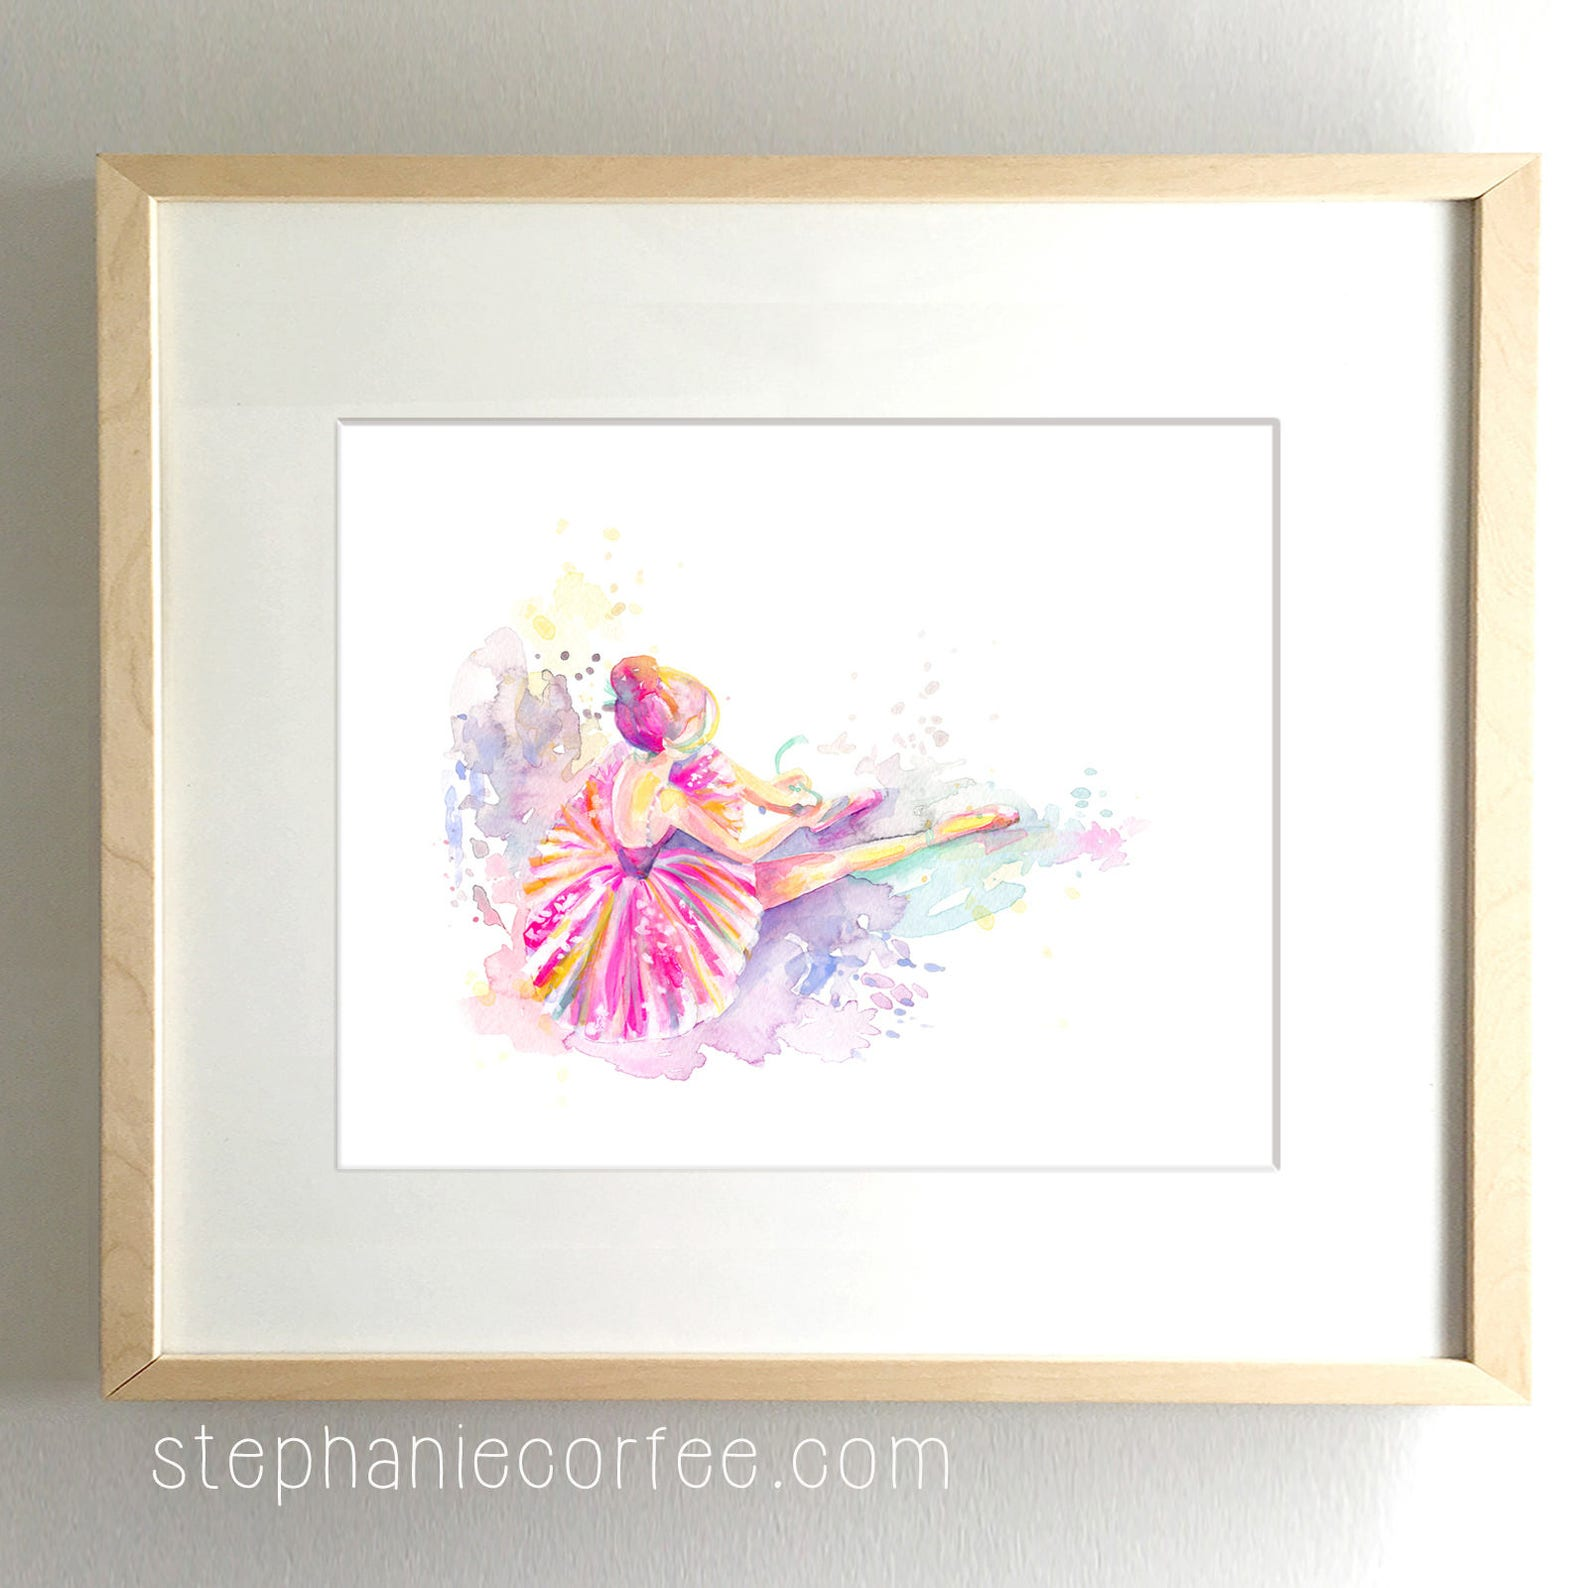 ballerina tying pointe shoes - print, ballet, watercolor painting, spatter painting, girl art, nursery art, tutu art